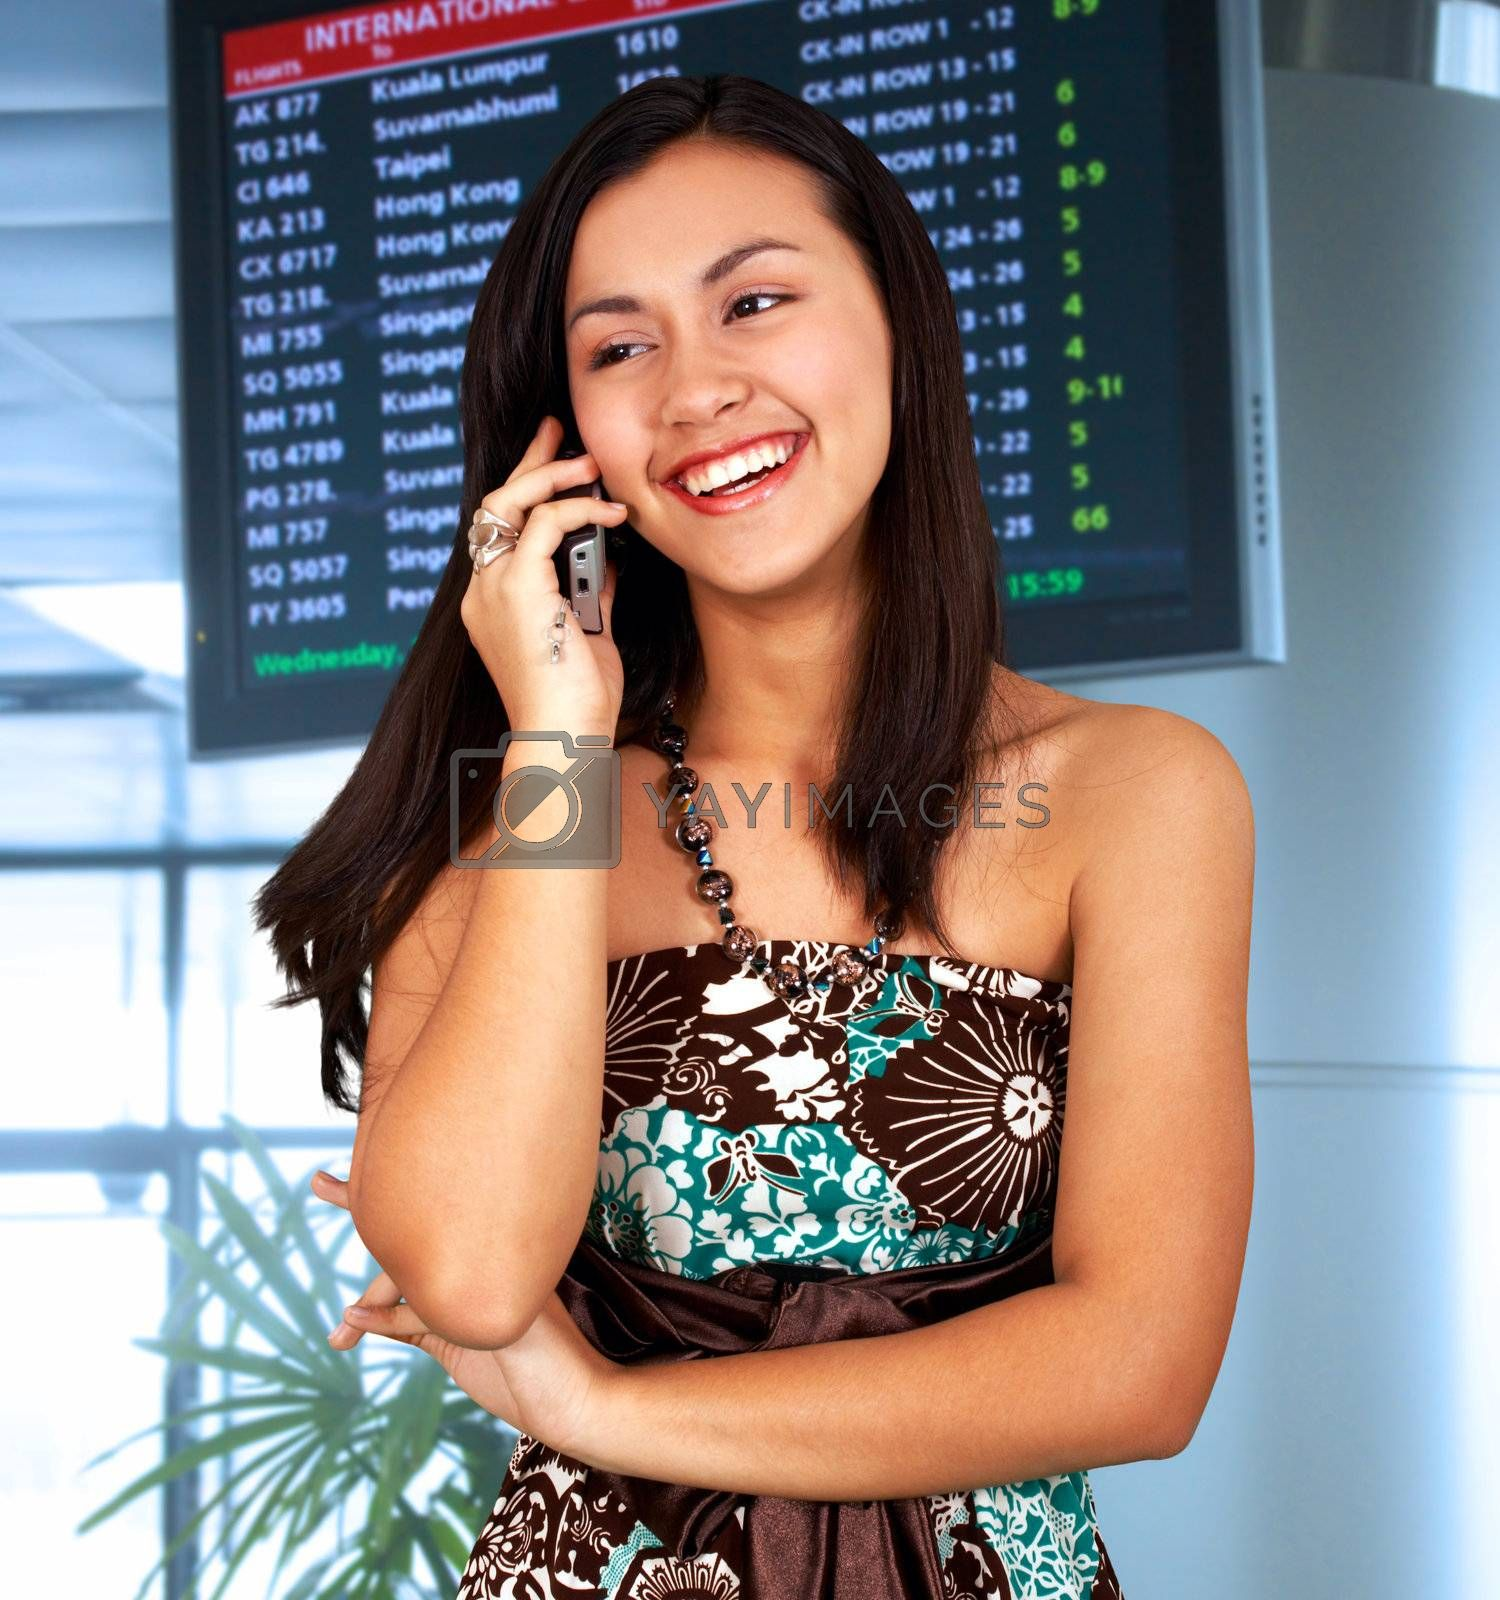 Young woman in an airport talking on the phone